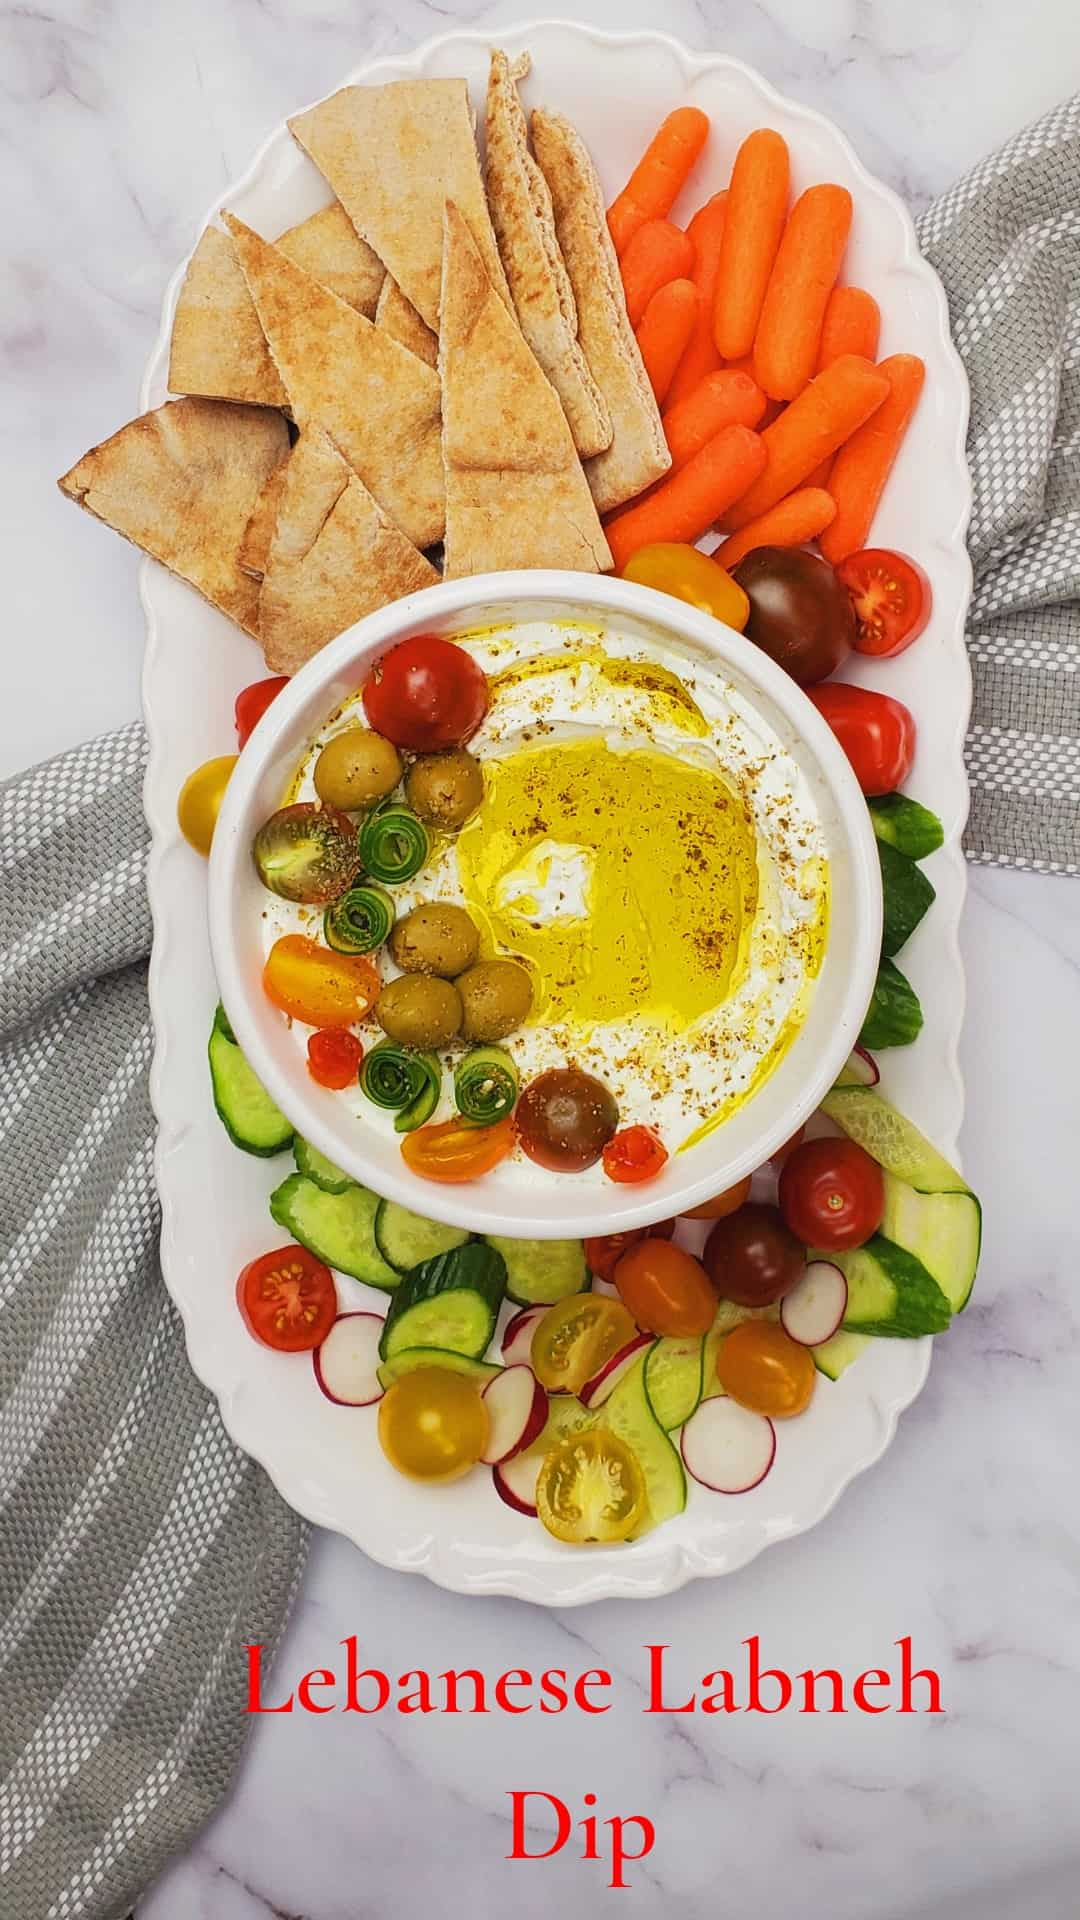 if you are looking for Lebanese dip recipes, you will love this Labneh recipe.